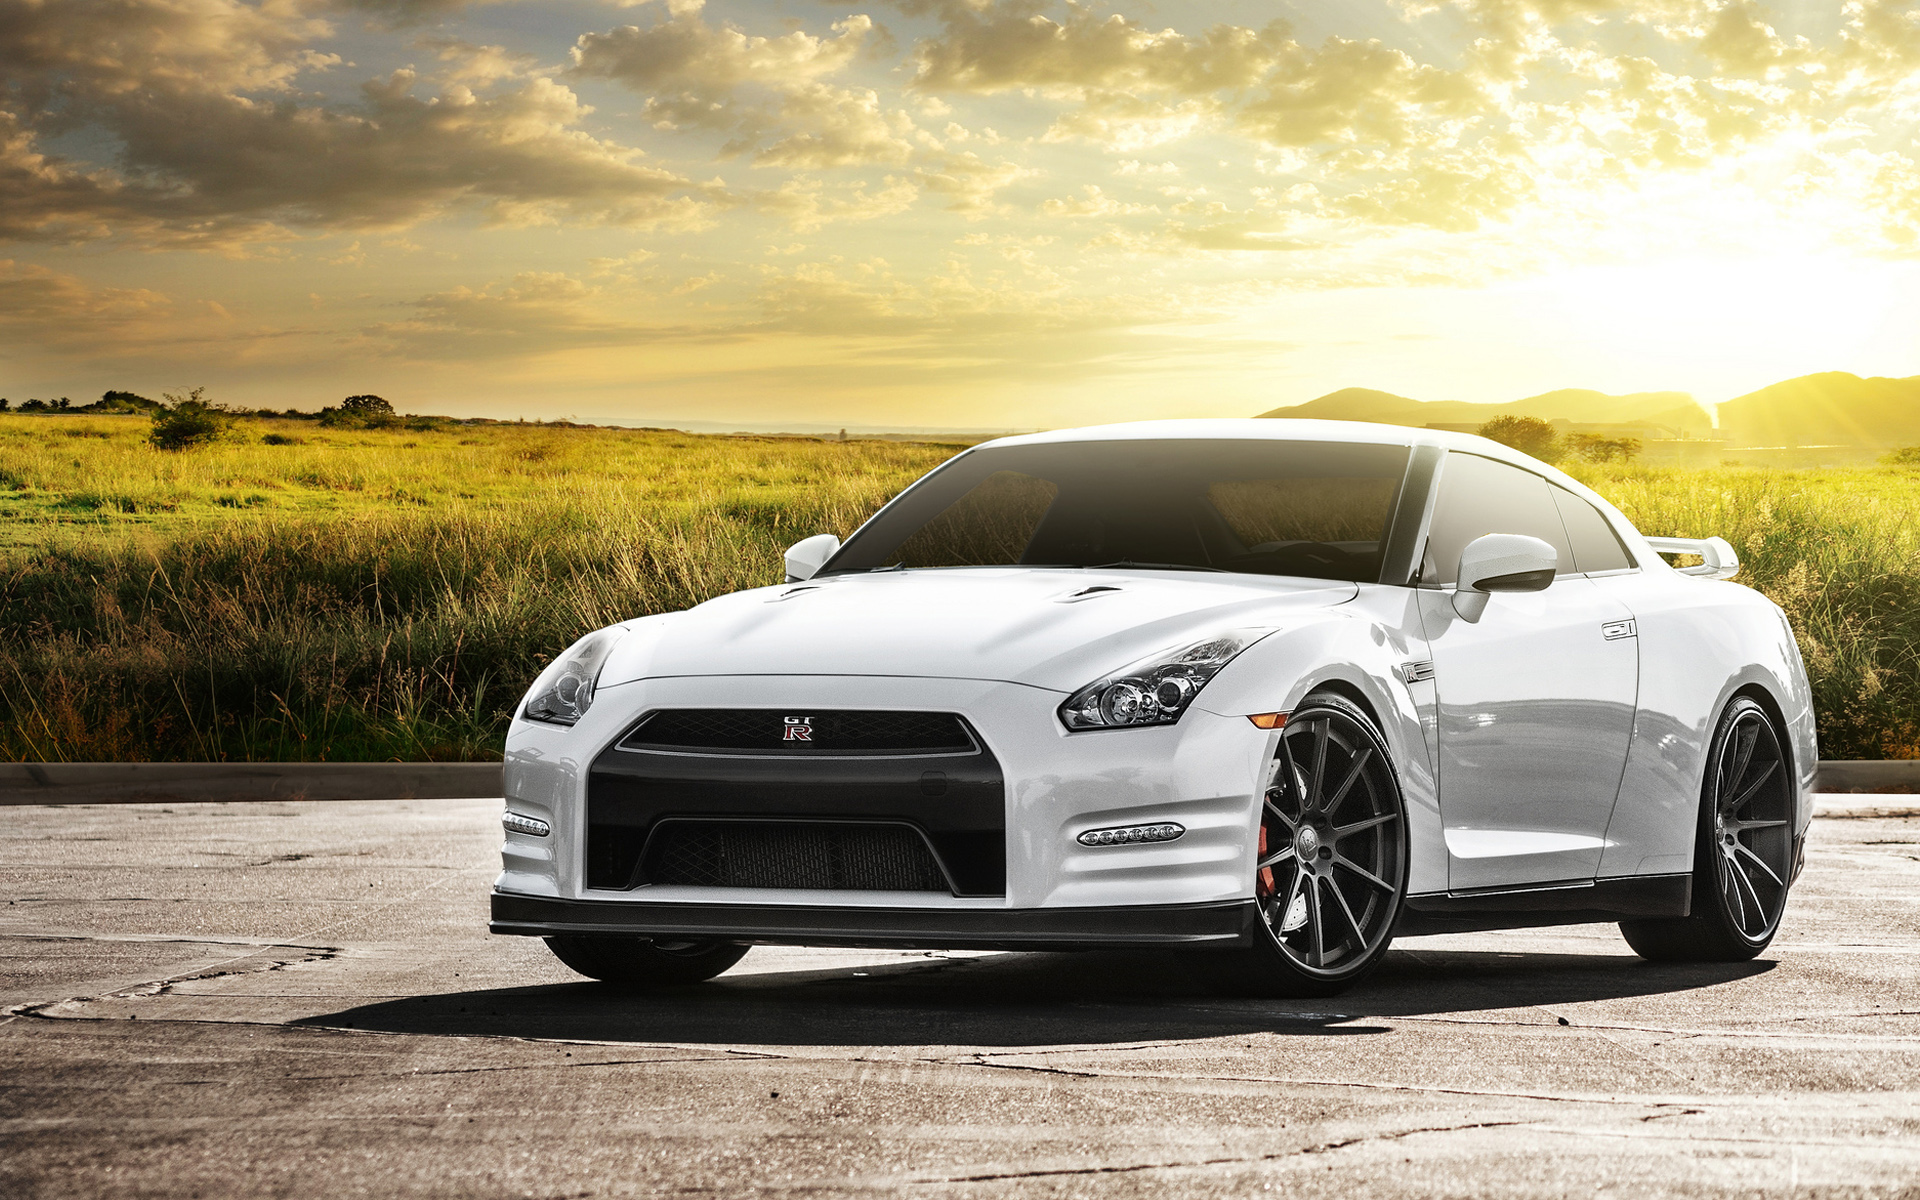 Nissan gtr Wallpapers on 2017 dodge gtx